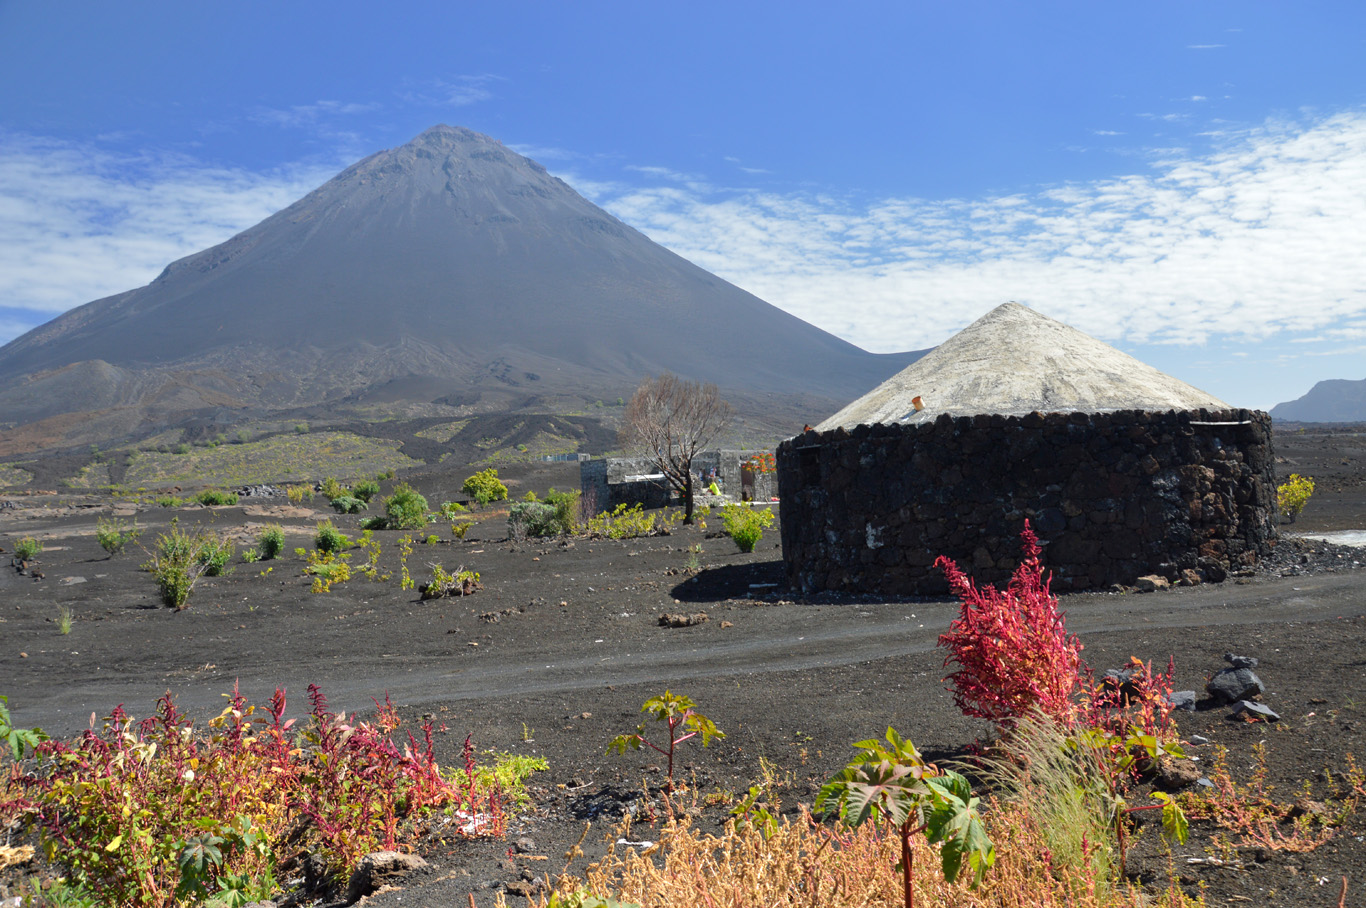 Local house with the view of the volcano